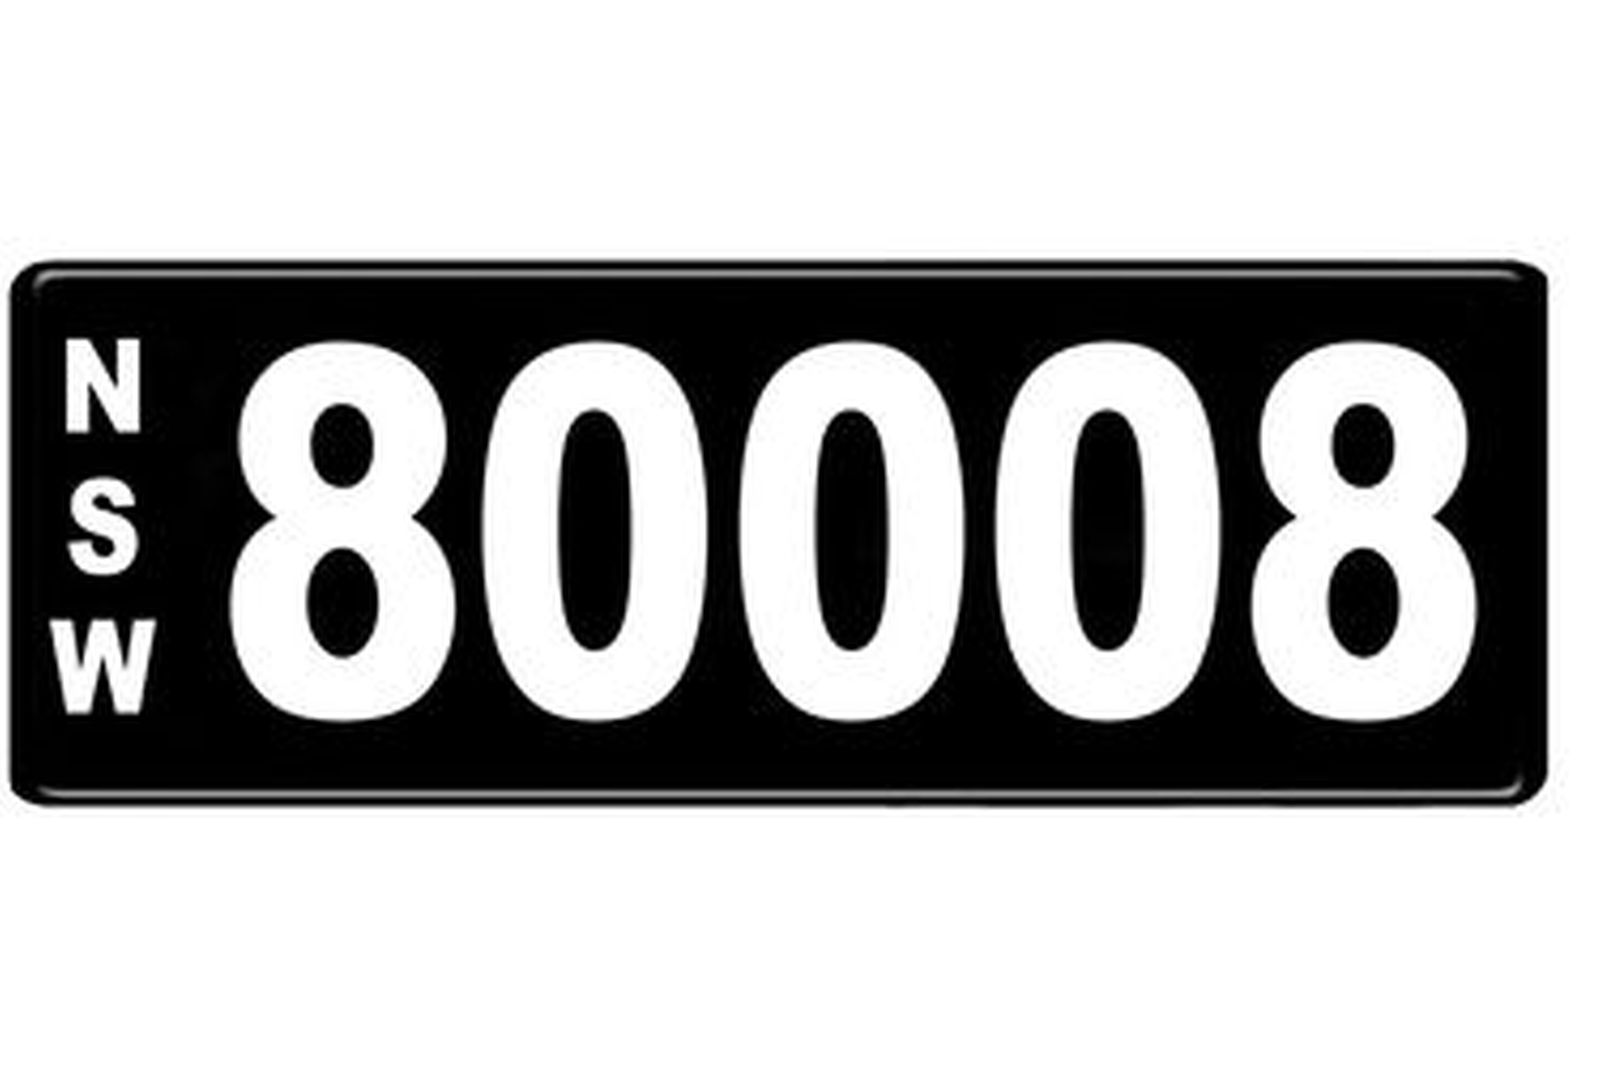 Number Plates - NSW Numerical Number Plates '80008'